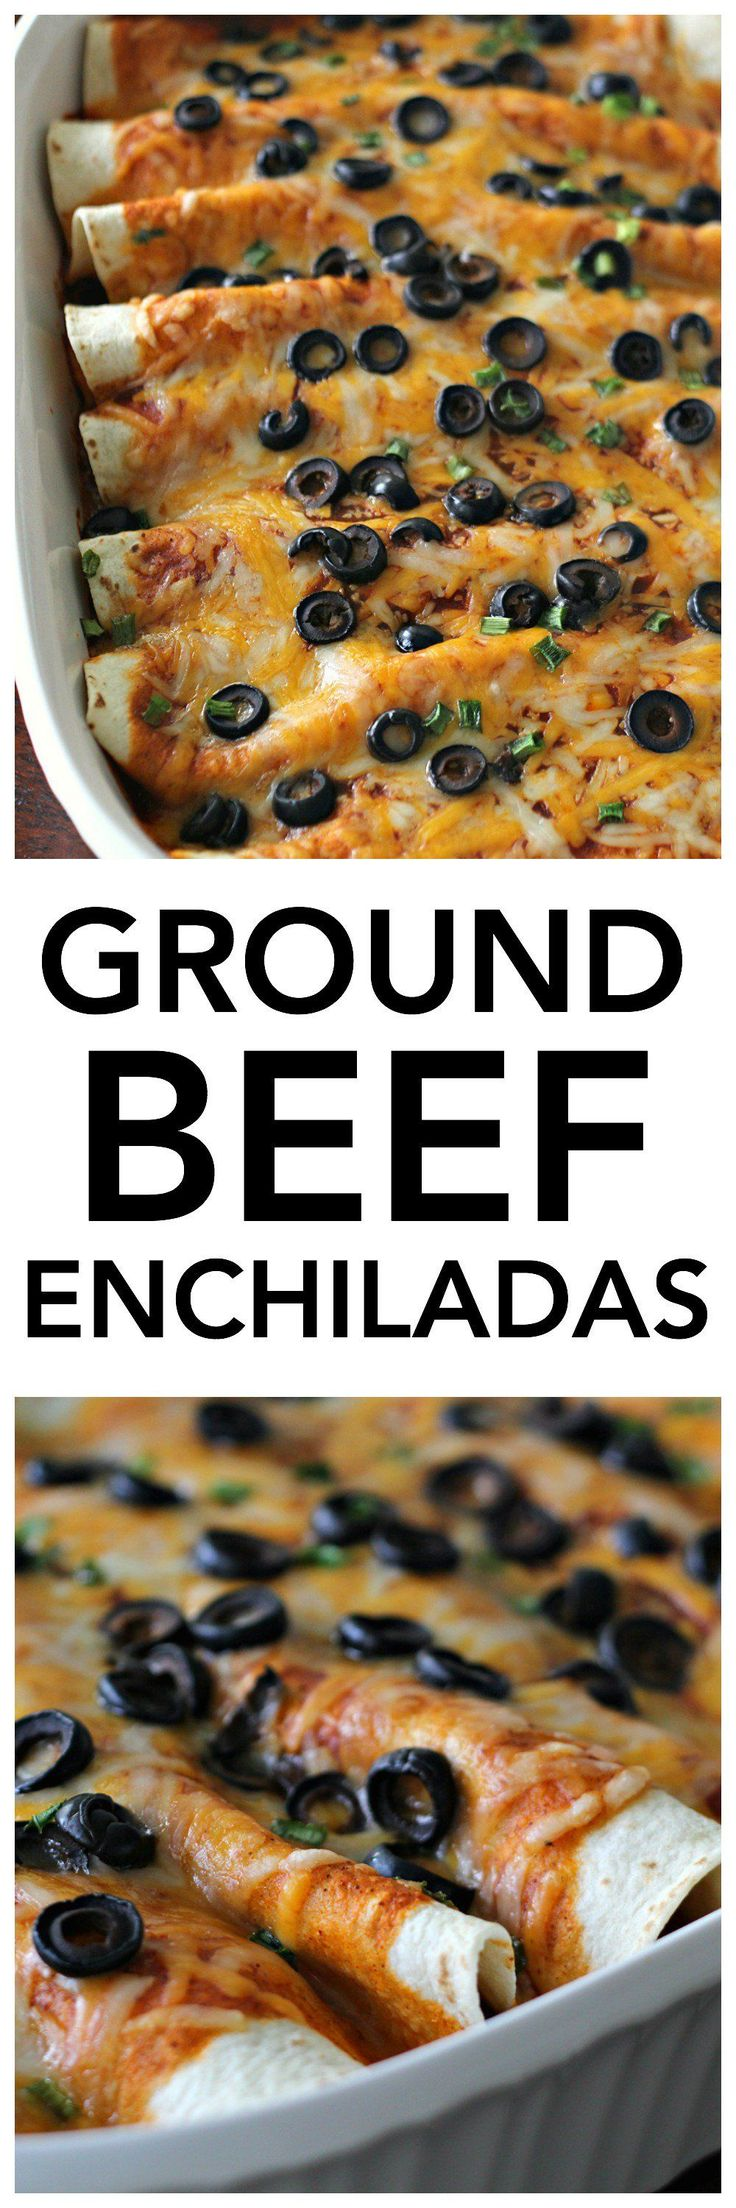 Ground Beef Enchiladas Recipe from SixSistersStuff.com   This made from scratch dinner tastes phenomenal and the kids will love it!